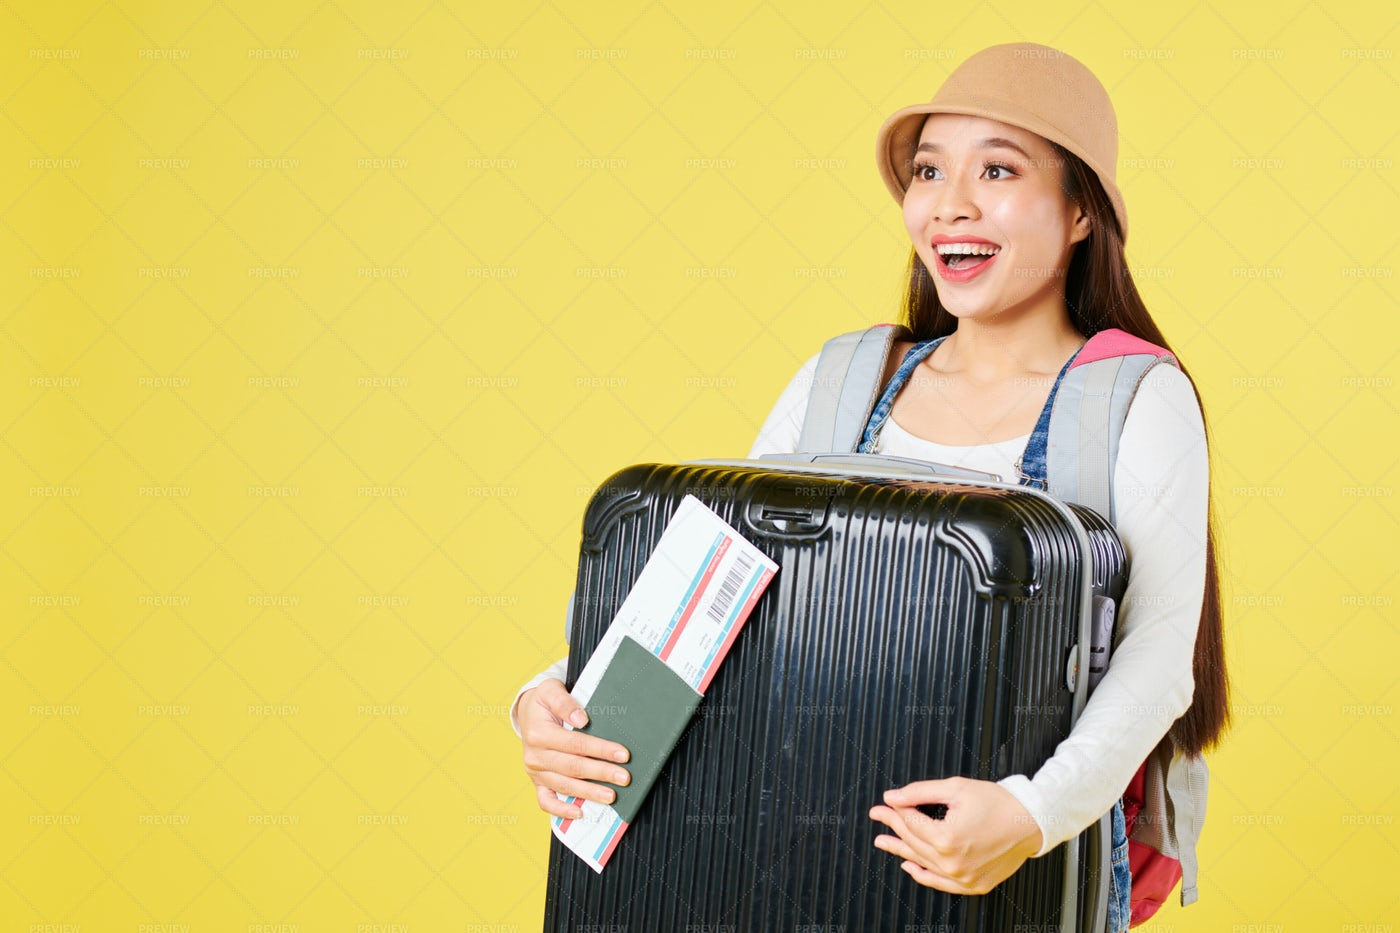 Happy Woman With Baggage: Stock Photos